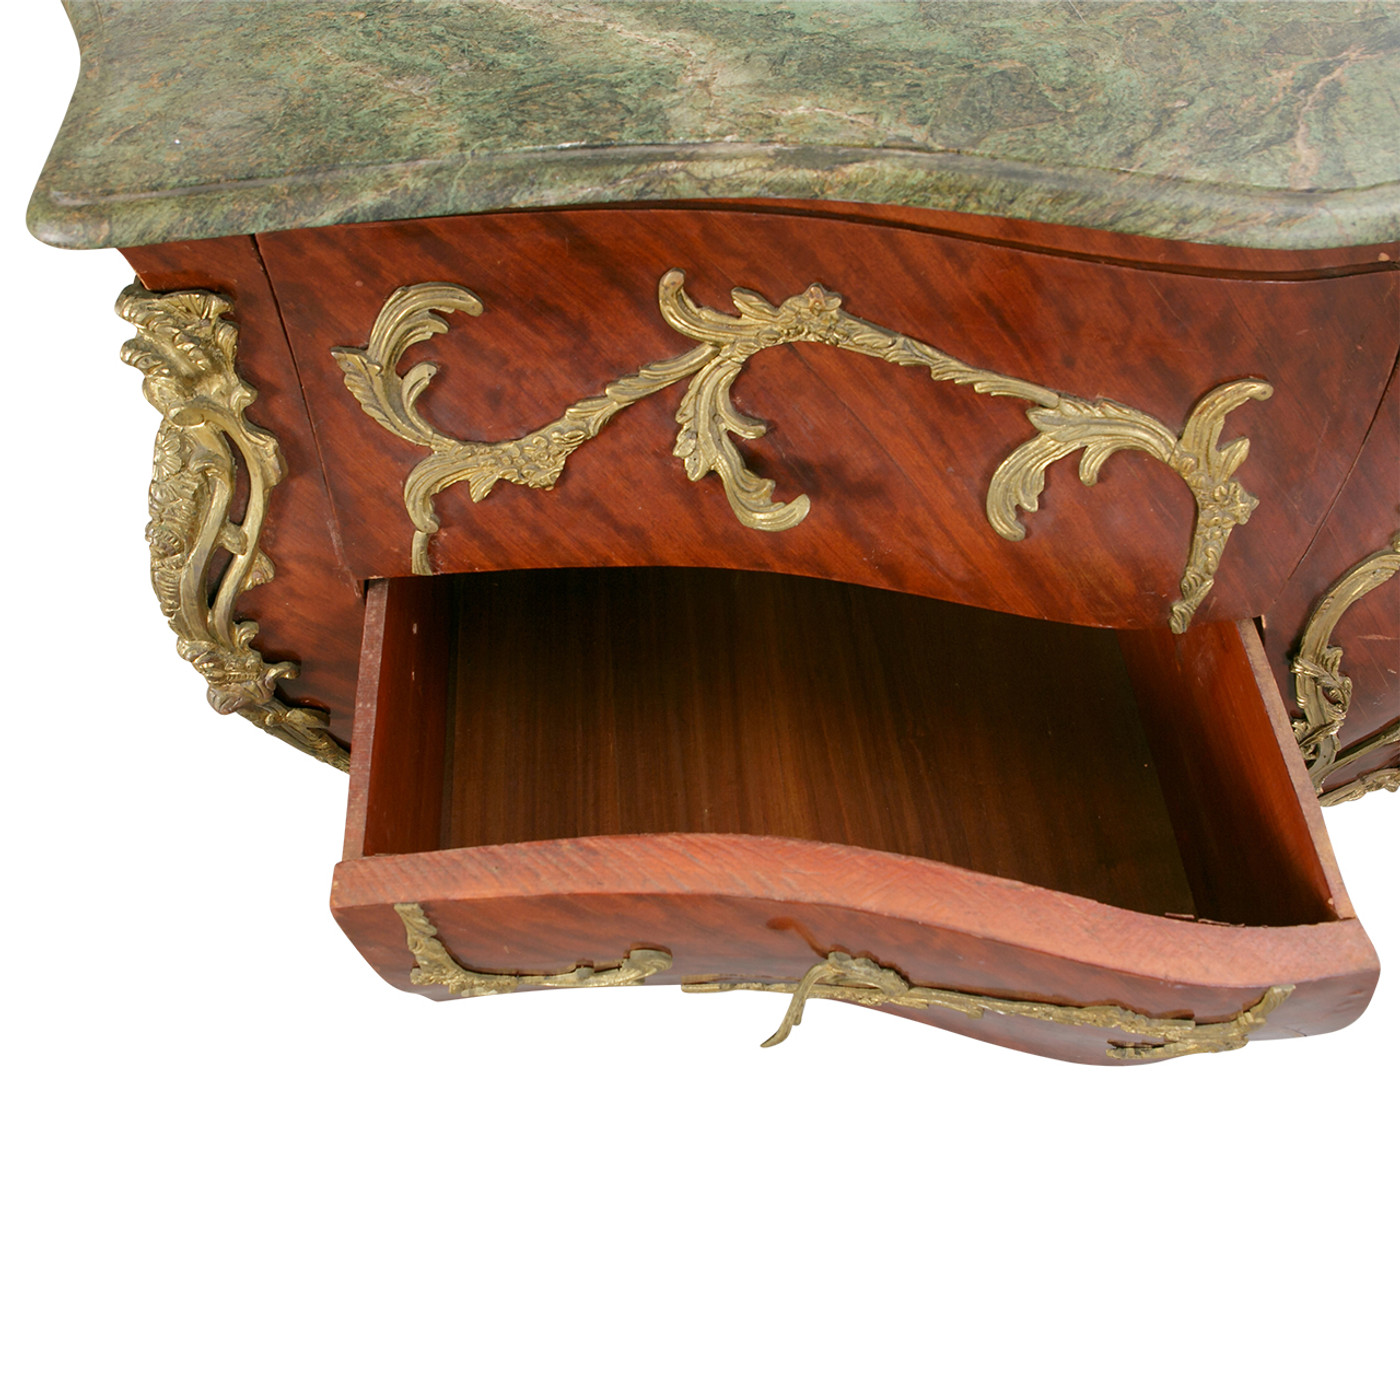 Louis XV Syle Commode with Ormulu & Mable Top